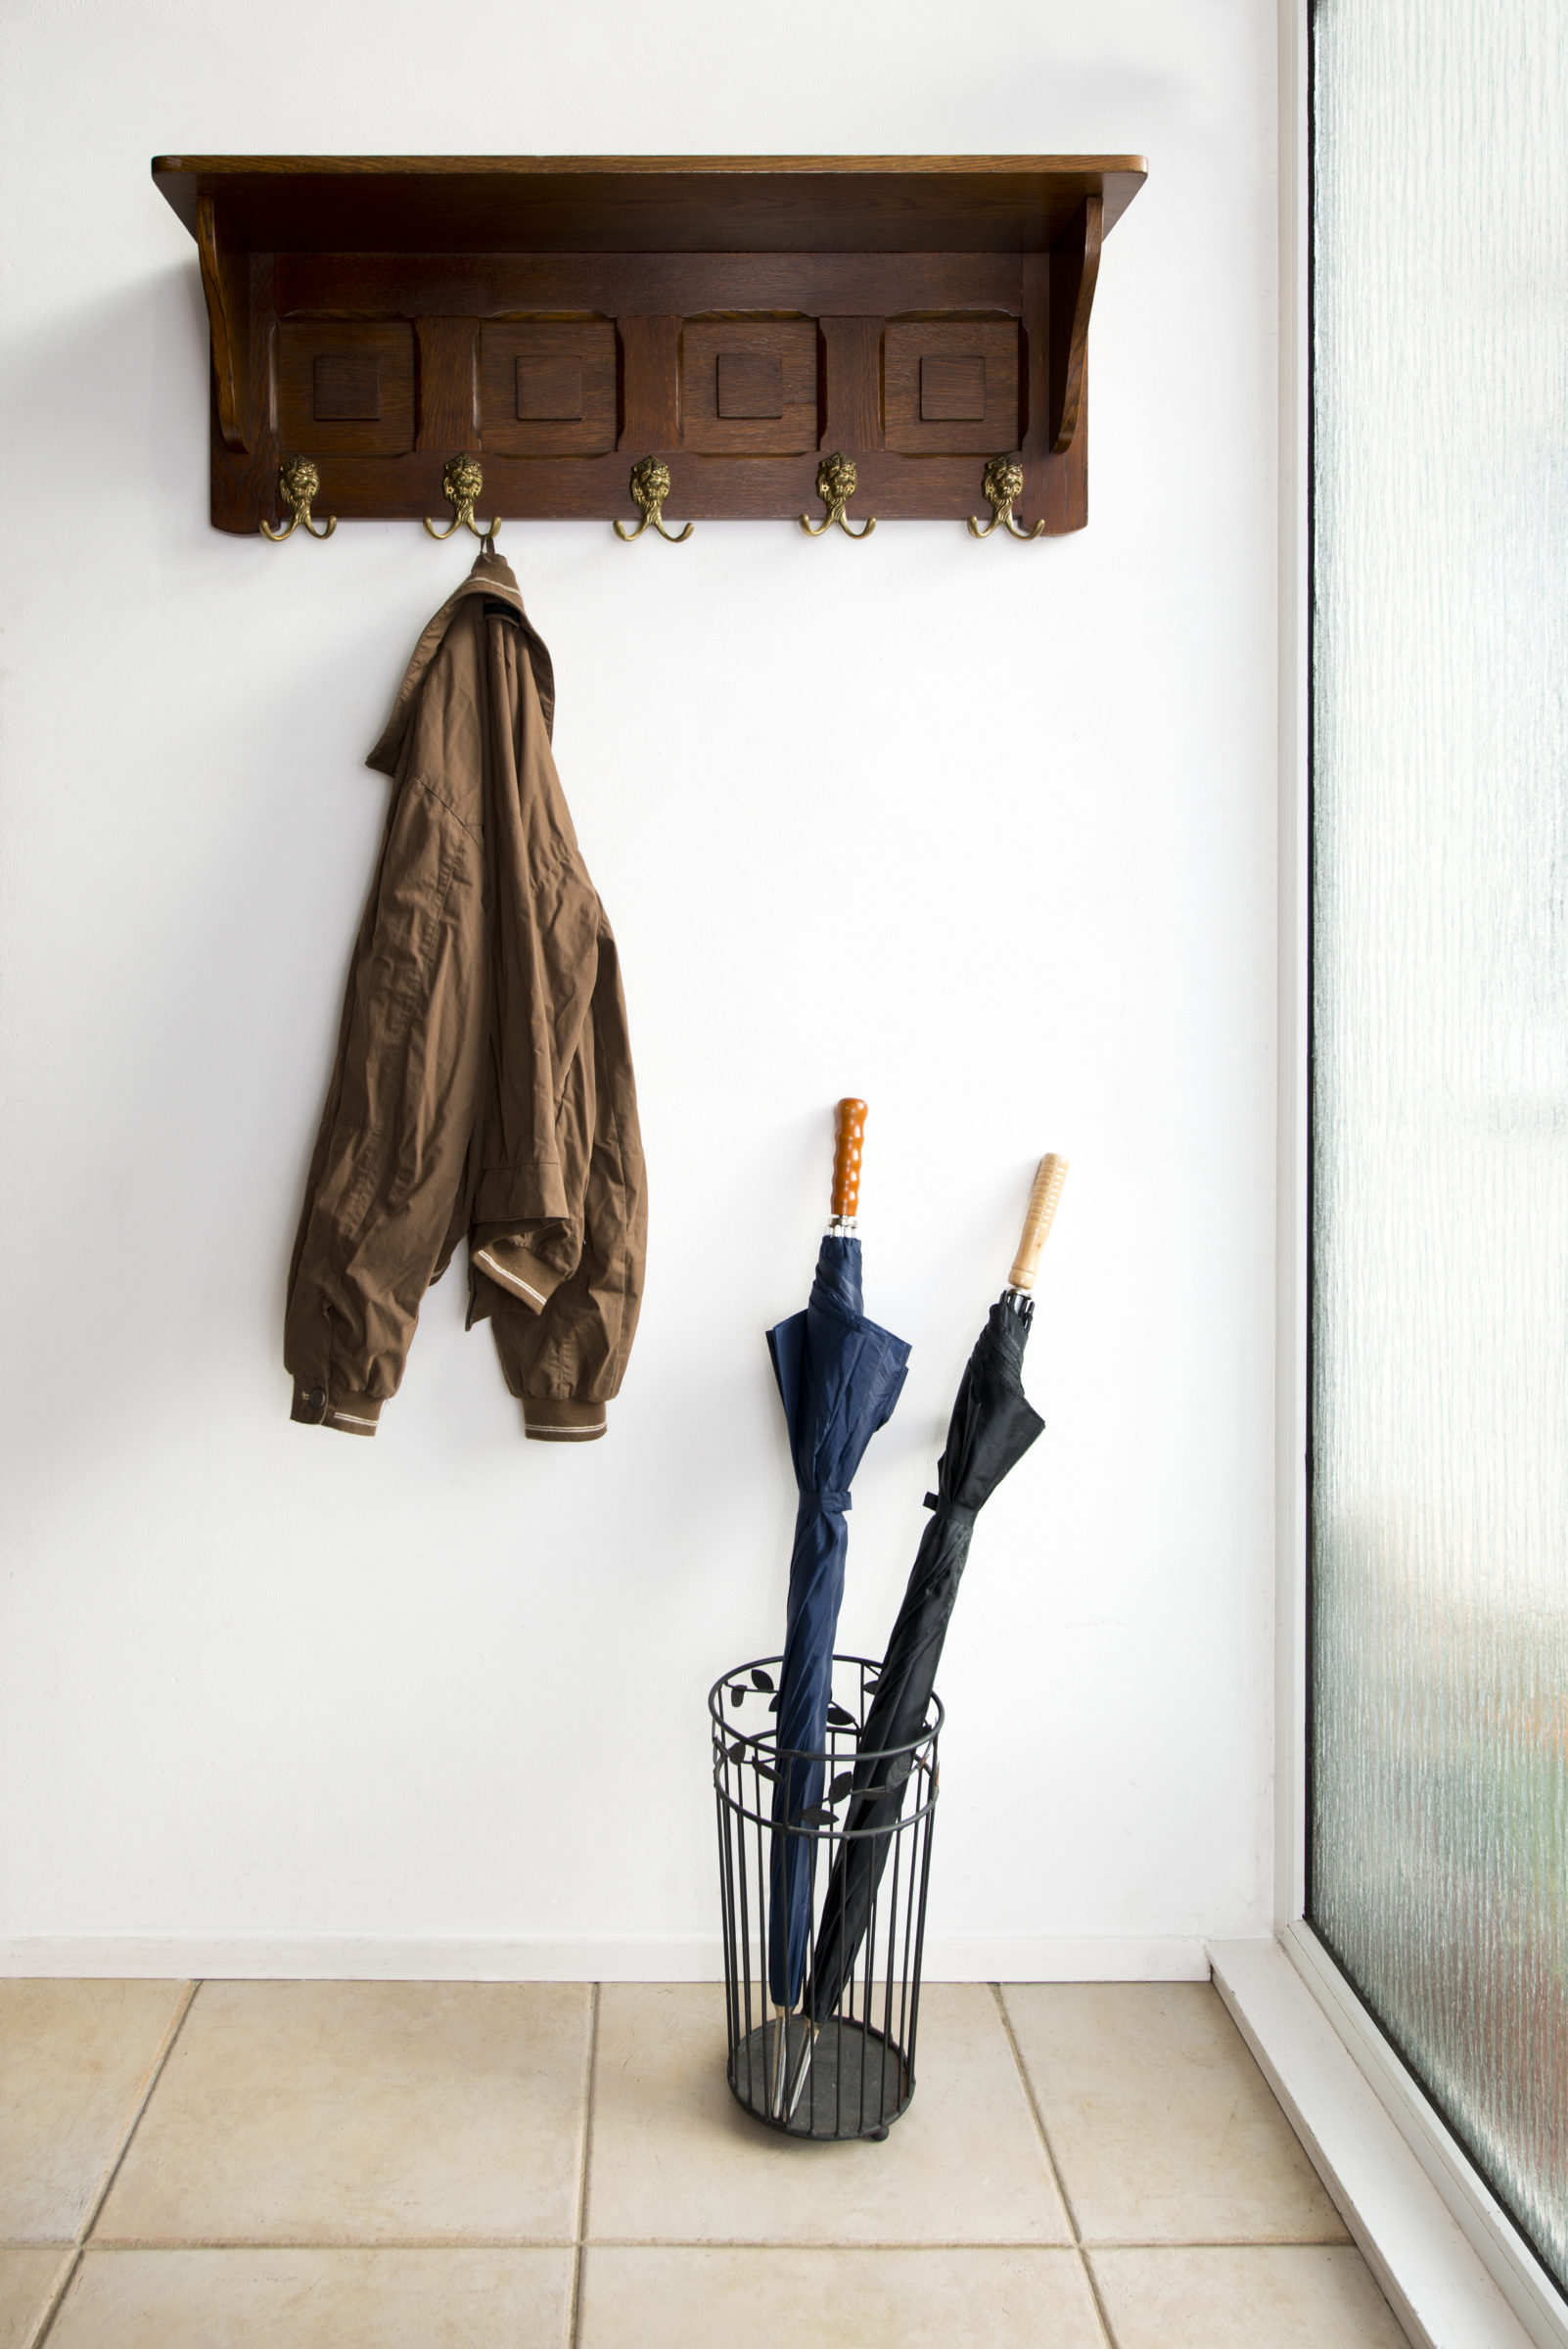 54185 jacket and umbrellas in foyer of home M2NGDVQ